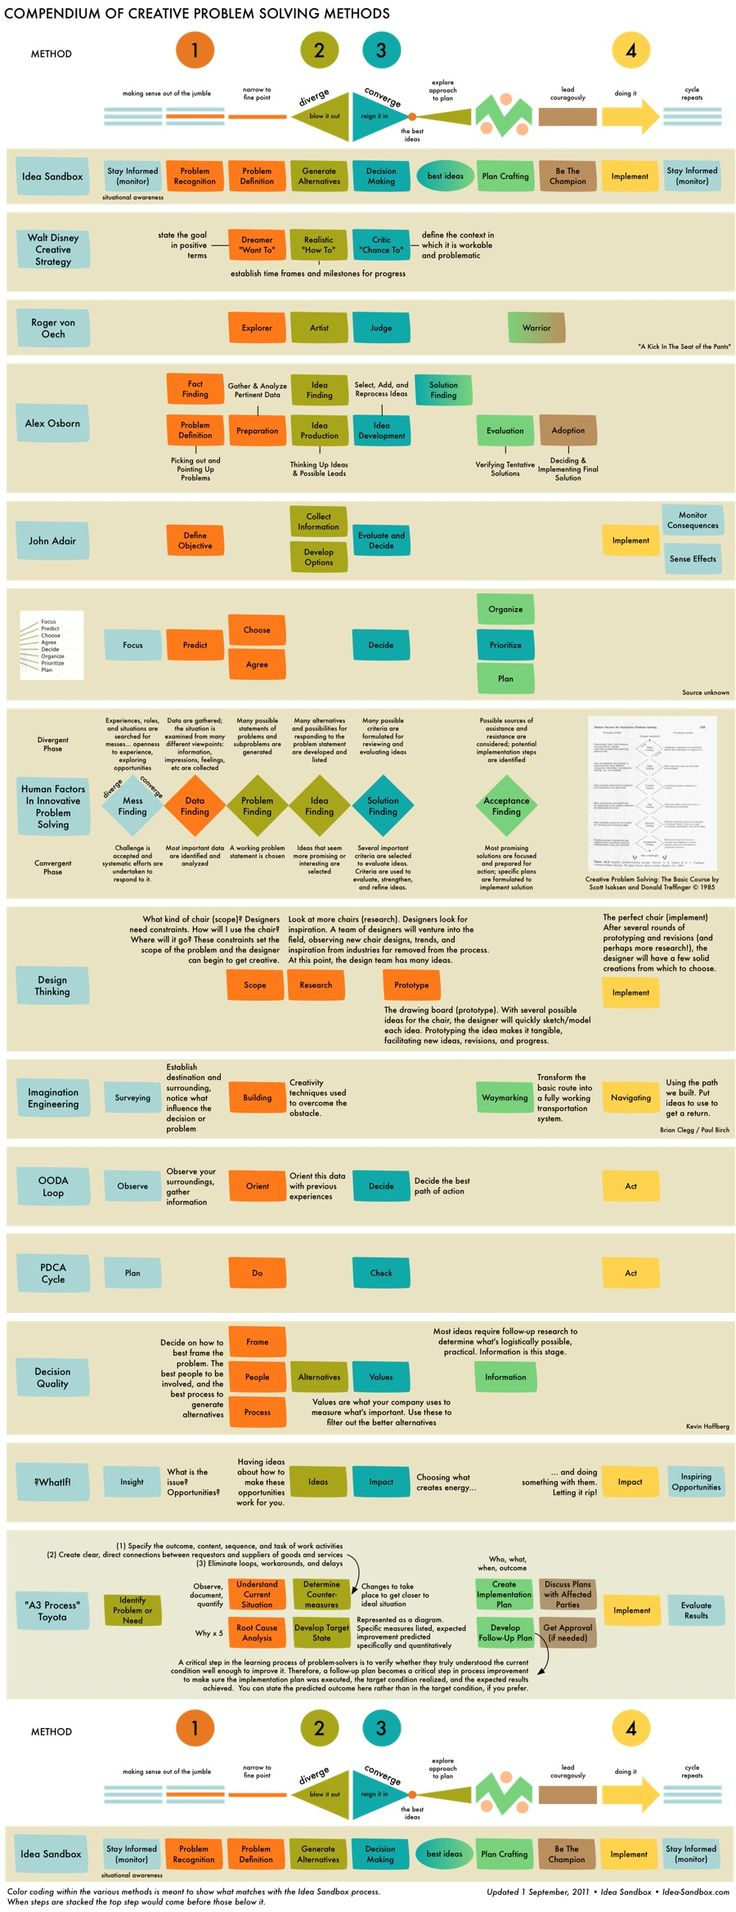 Infographic: Compendium of Creative Problem Solving Methods | Idea Sandbox. September 1, 2011 #infographic #designthinking